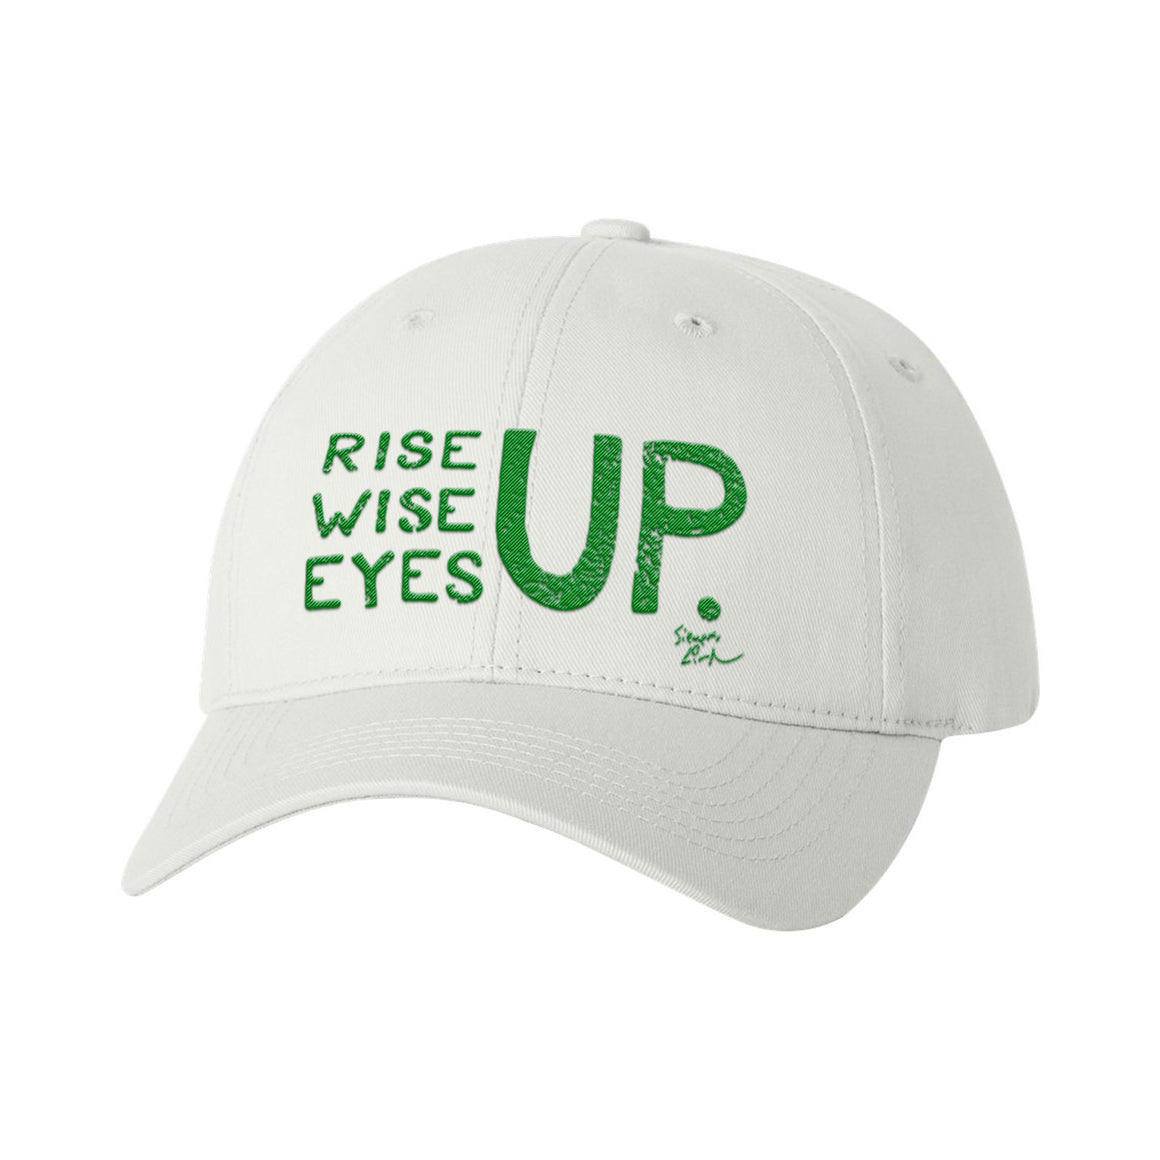 Rise Up, Wise Up, Eyes Up - Baseball Cap